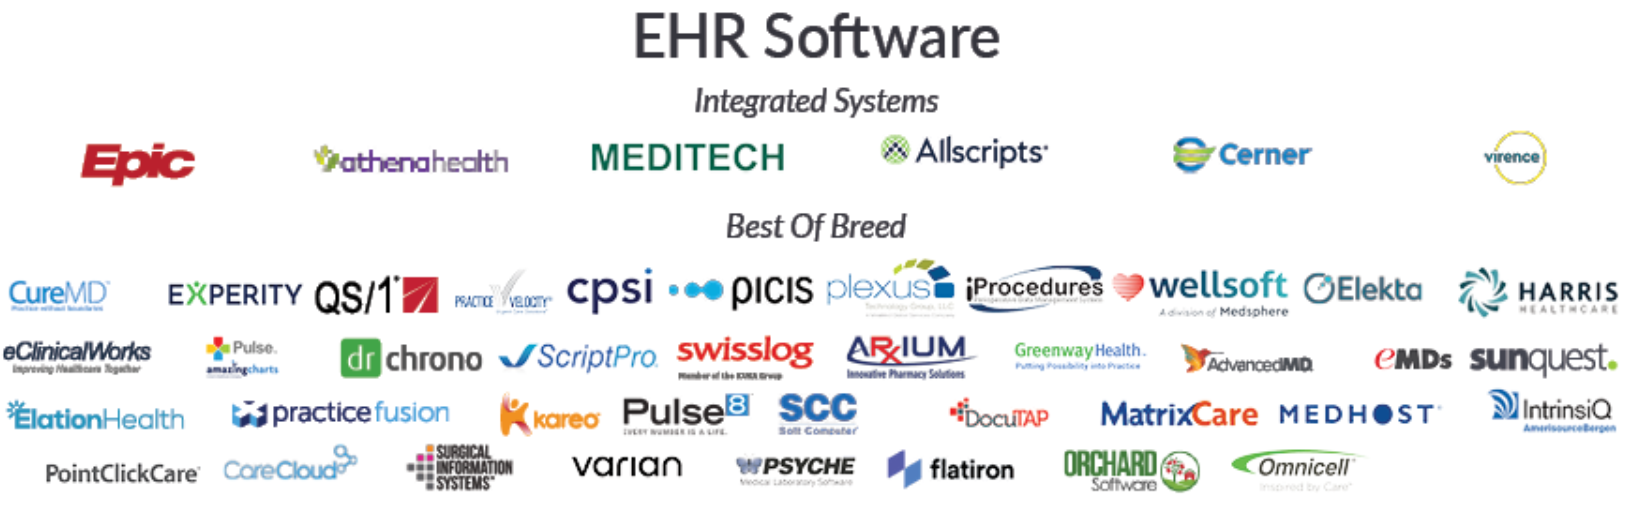 EHR software vendors